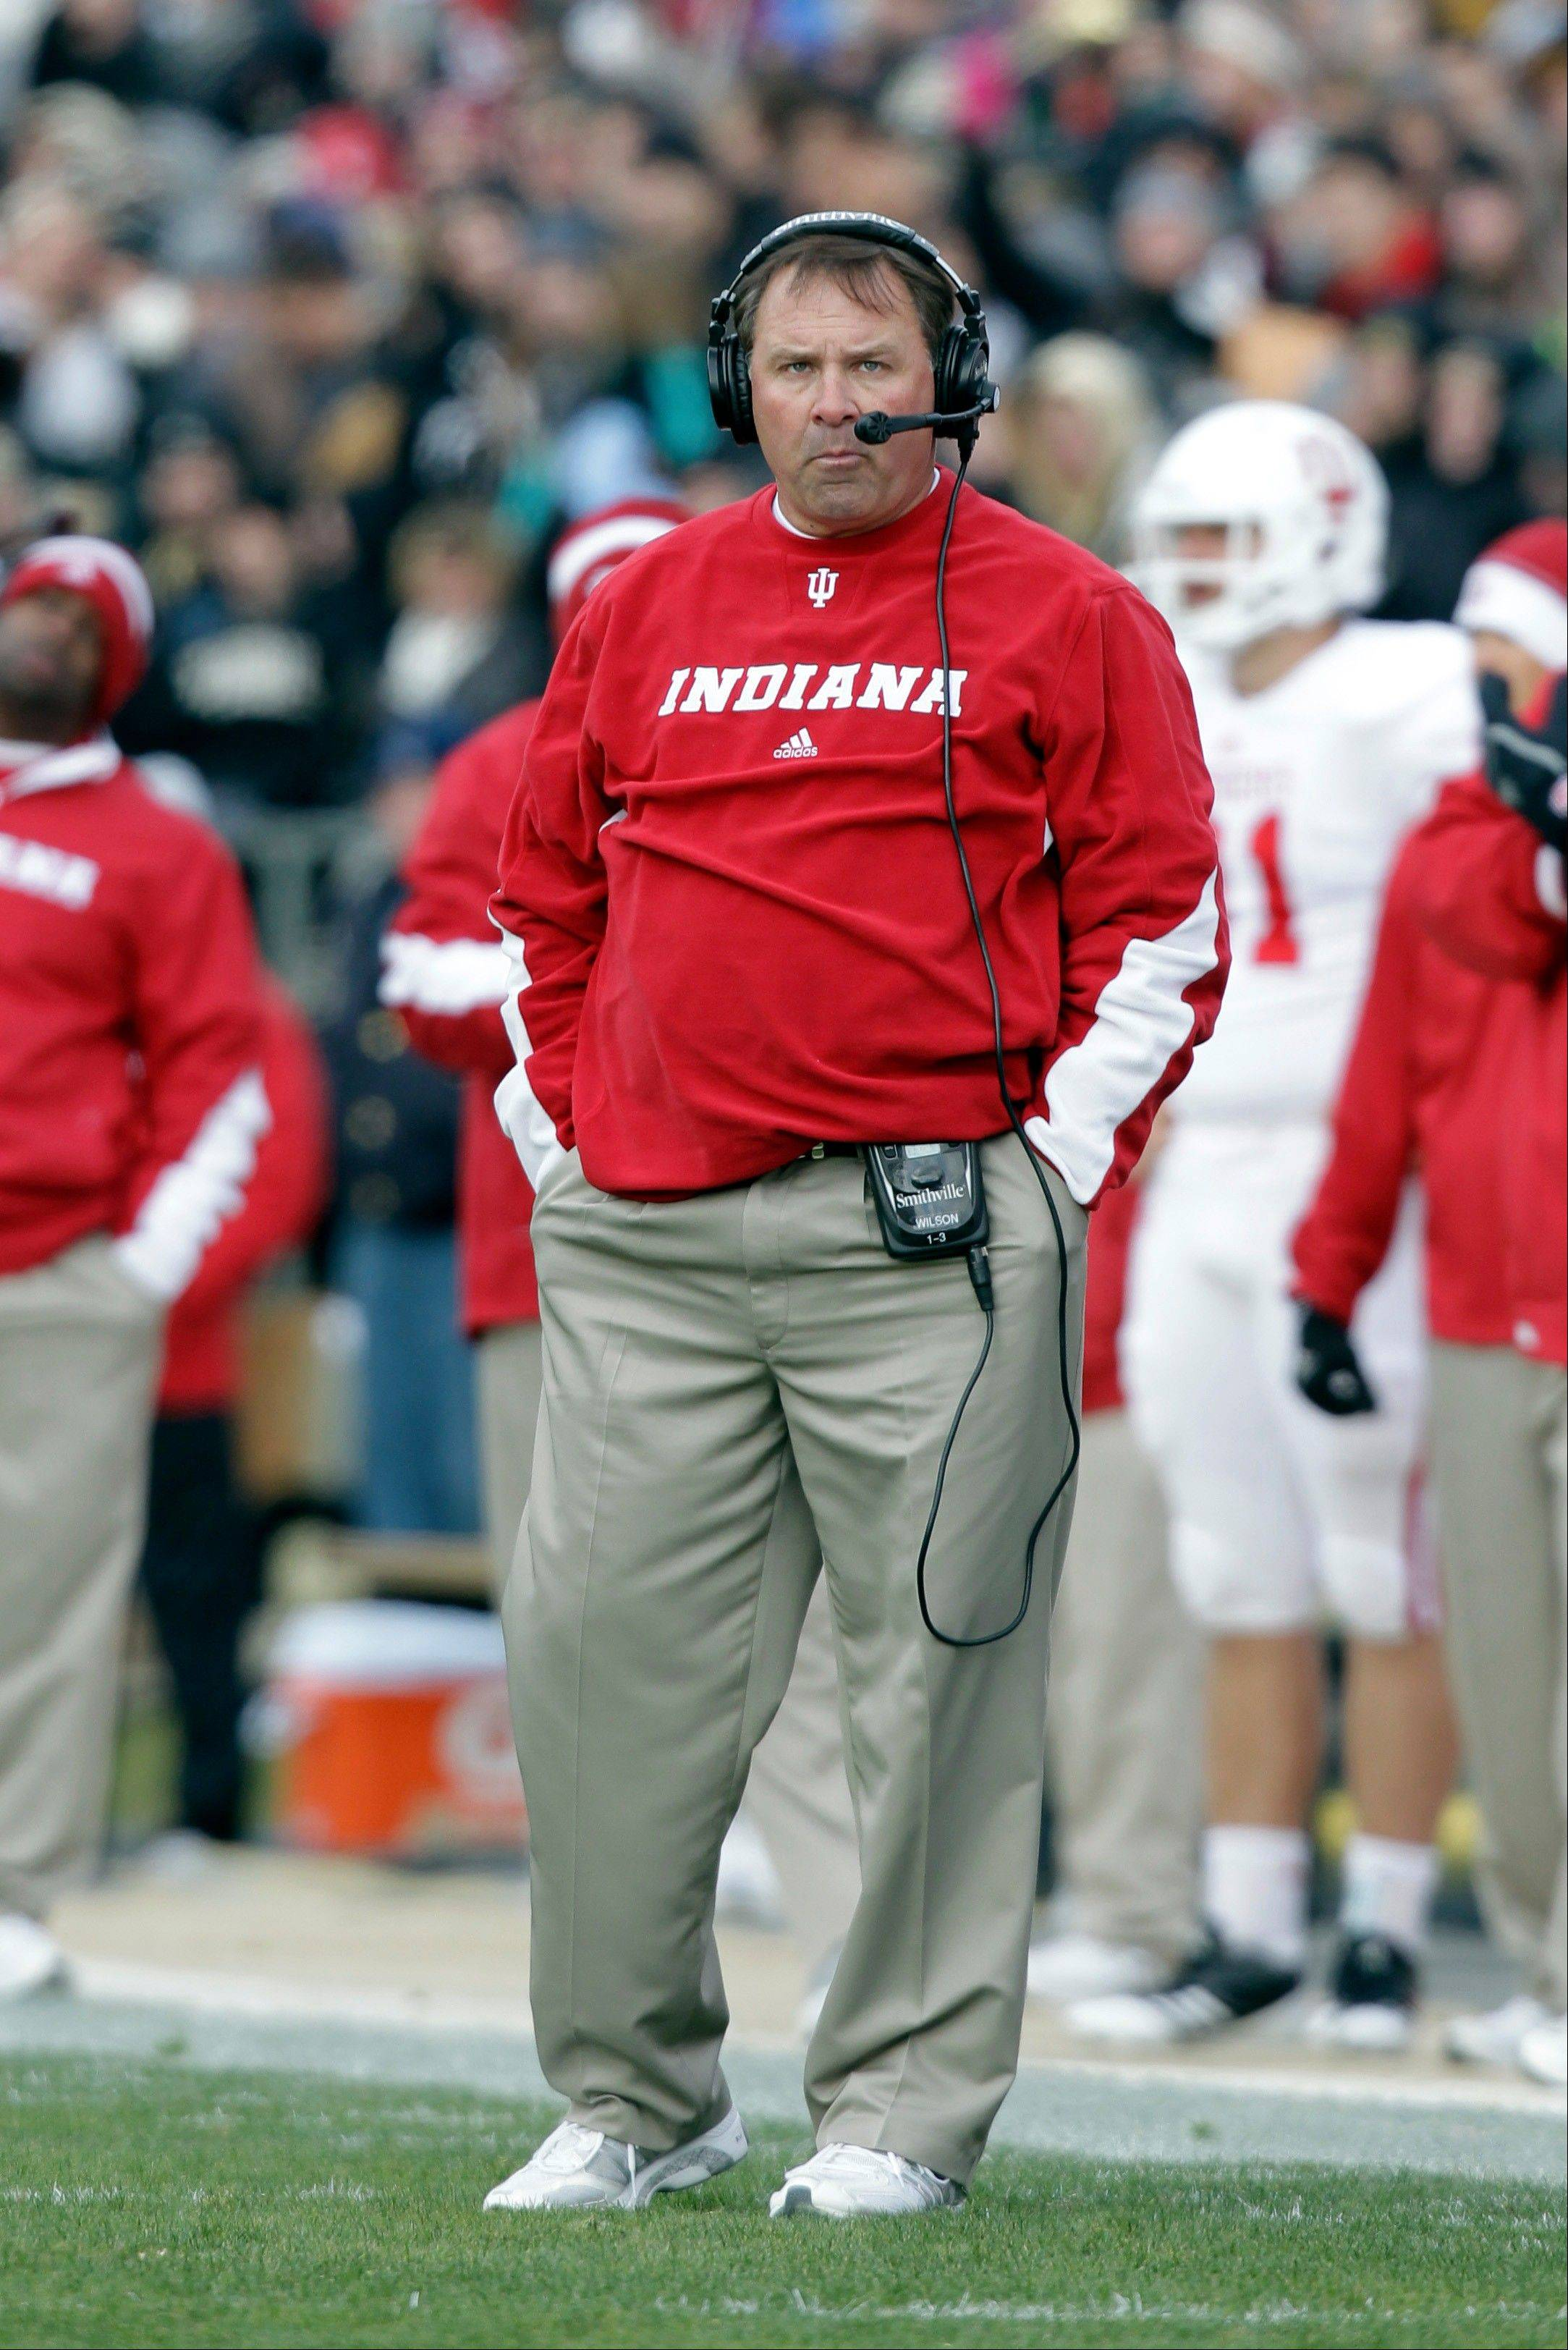 Hoosiers hope to see improvements against Navy